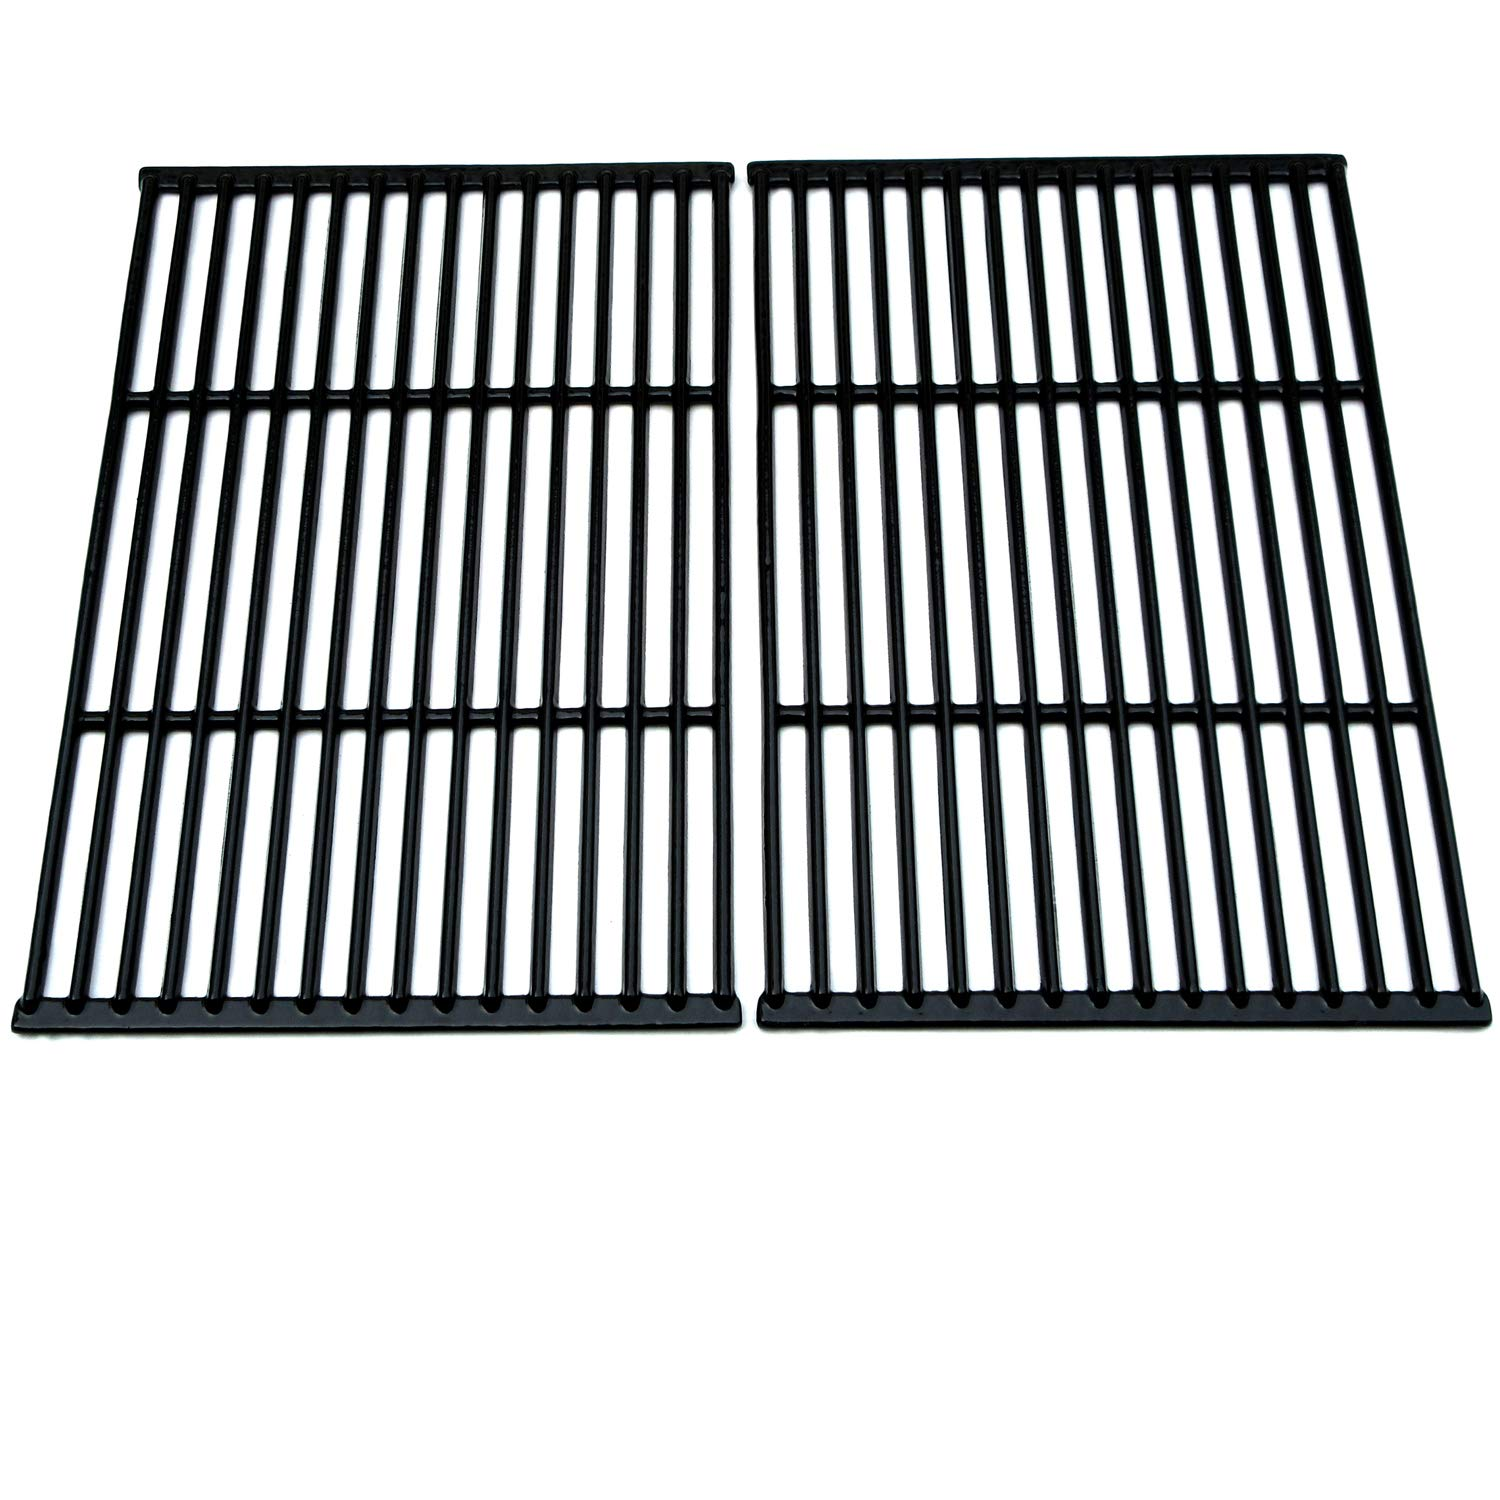 Direct Store Parts DC122 Polished Porcelain Coated Cast Iron Cooking Grid Replacement Charbroil, Brinkmann, Broil-Mate, Charmglow, Grill Chef, Grill Pro, Grill Zone, Sterling, Turbo Gas Grill